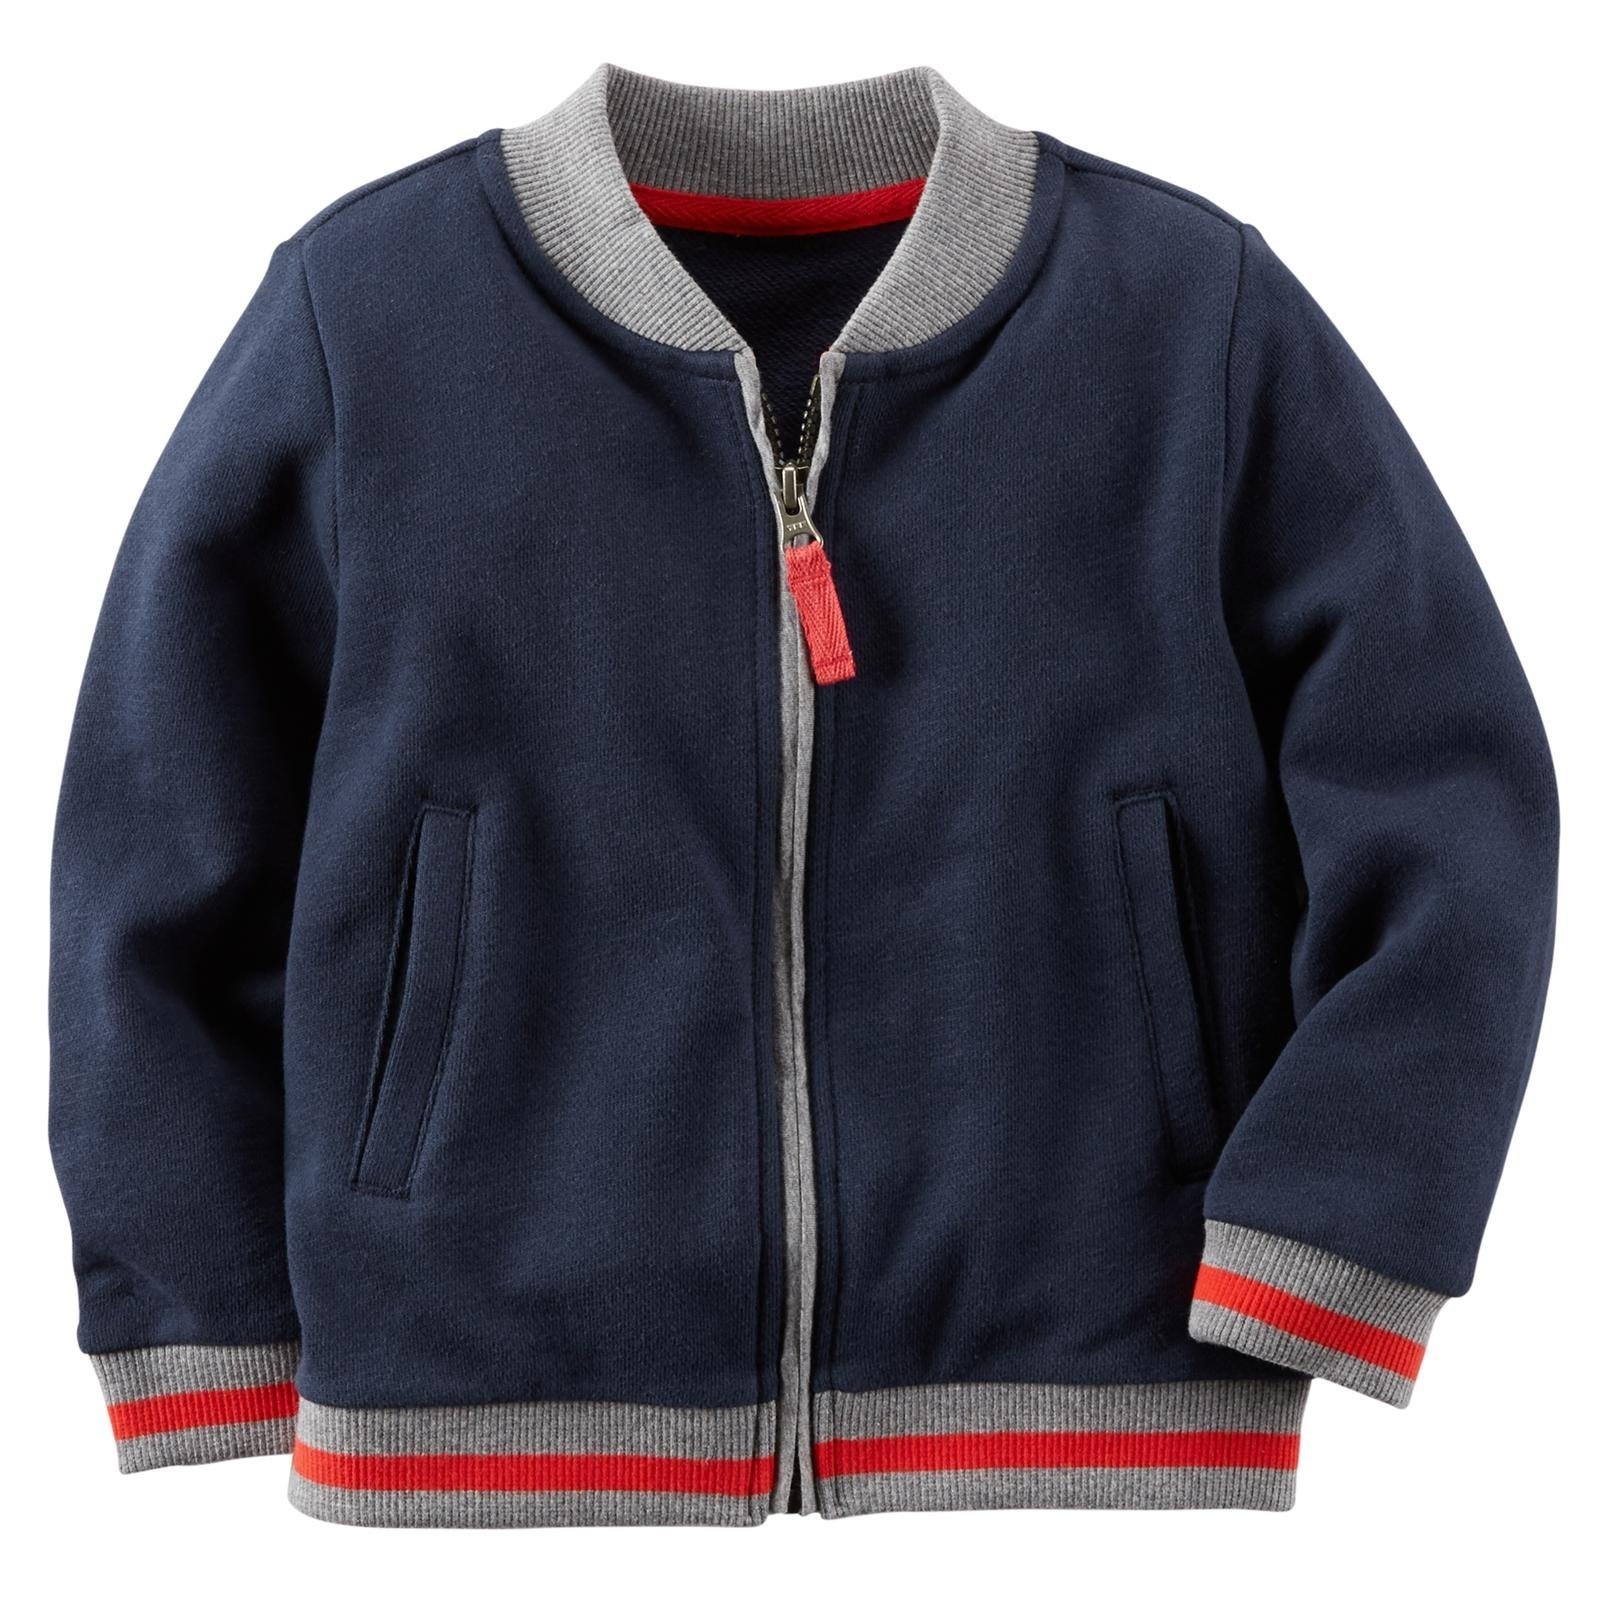 Carter's Little Boys' Crew Jacket (Toddler/Kid) - Navy - 7